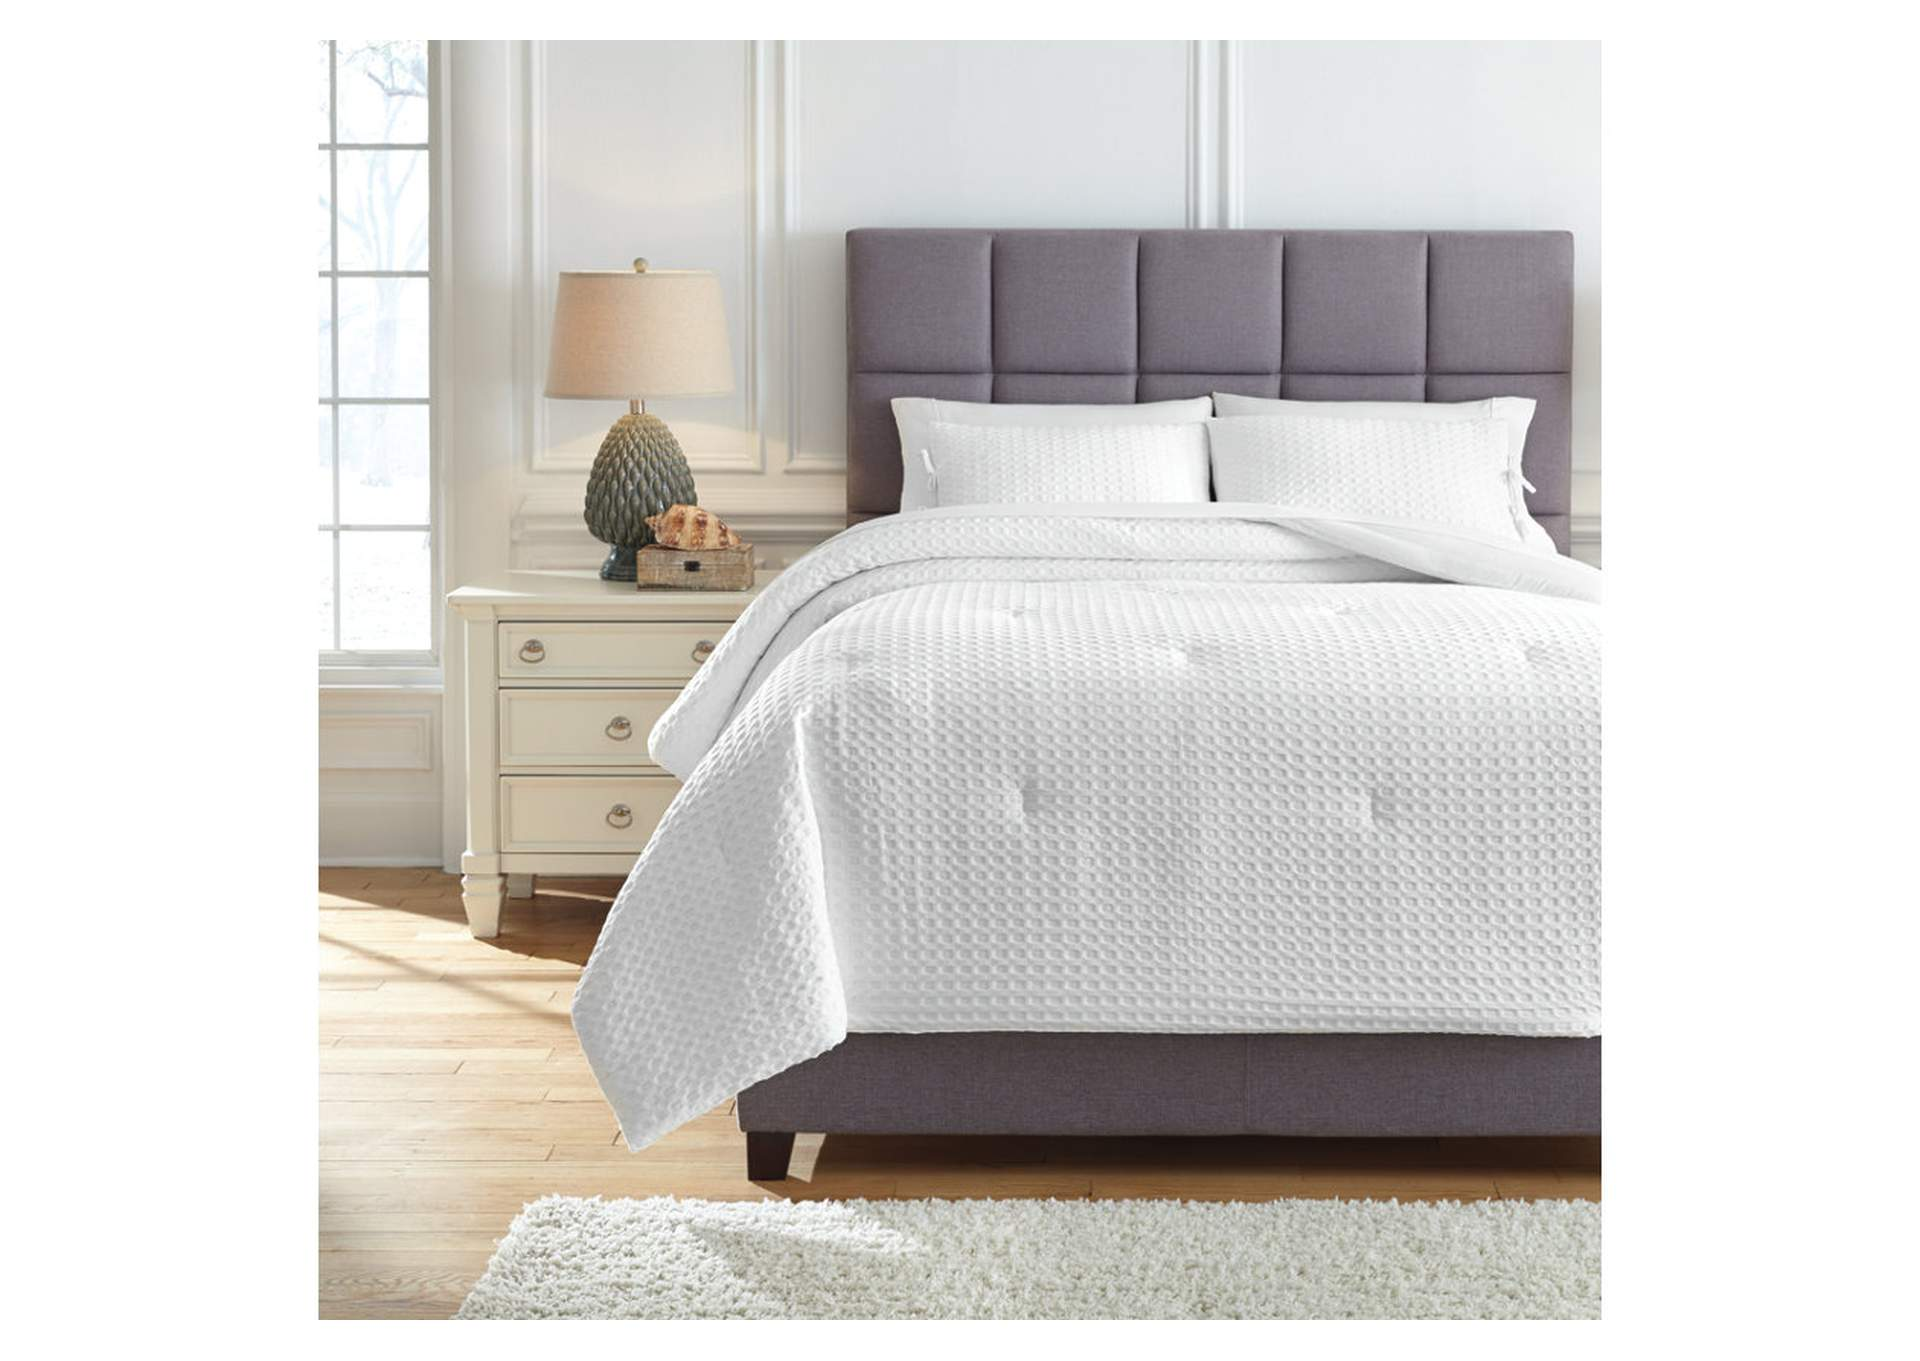 Maurilio White King Comforter Set,Signature Design By Ashley